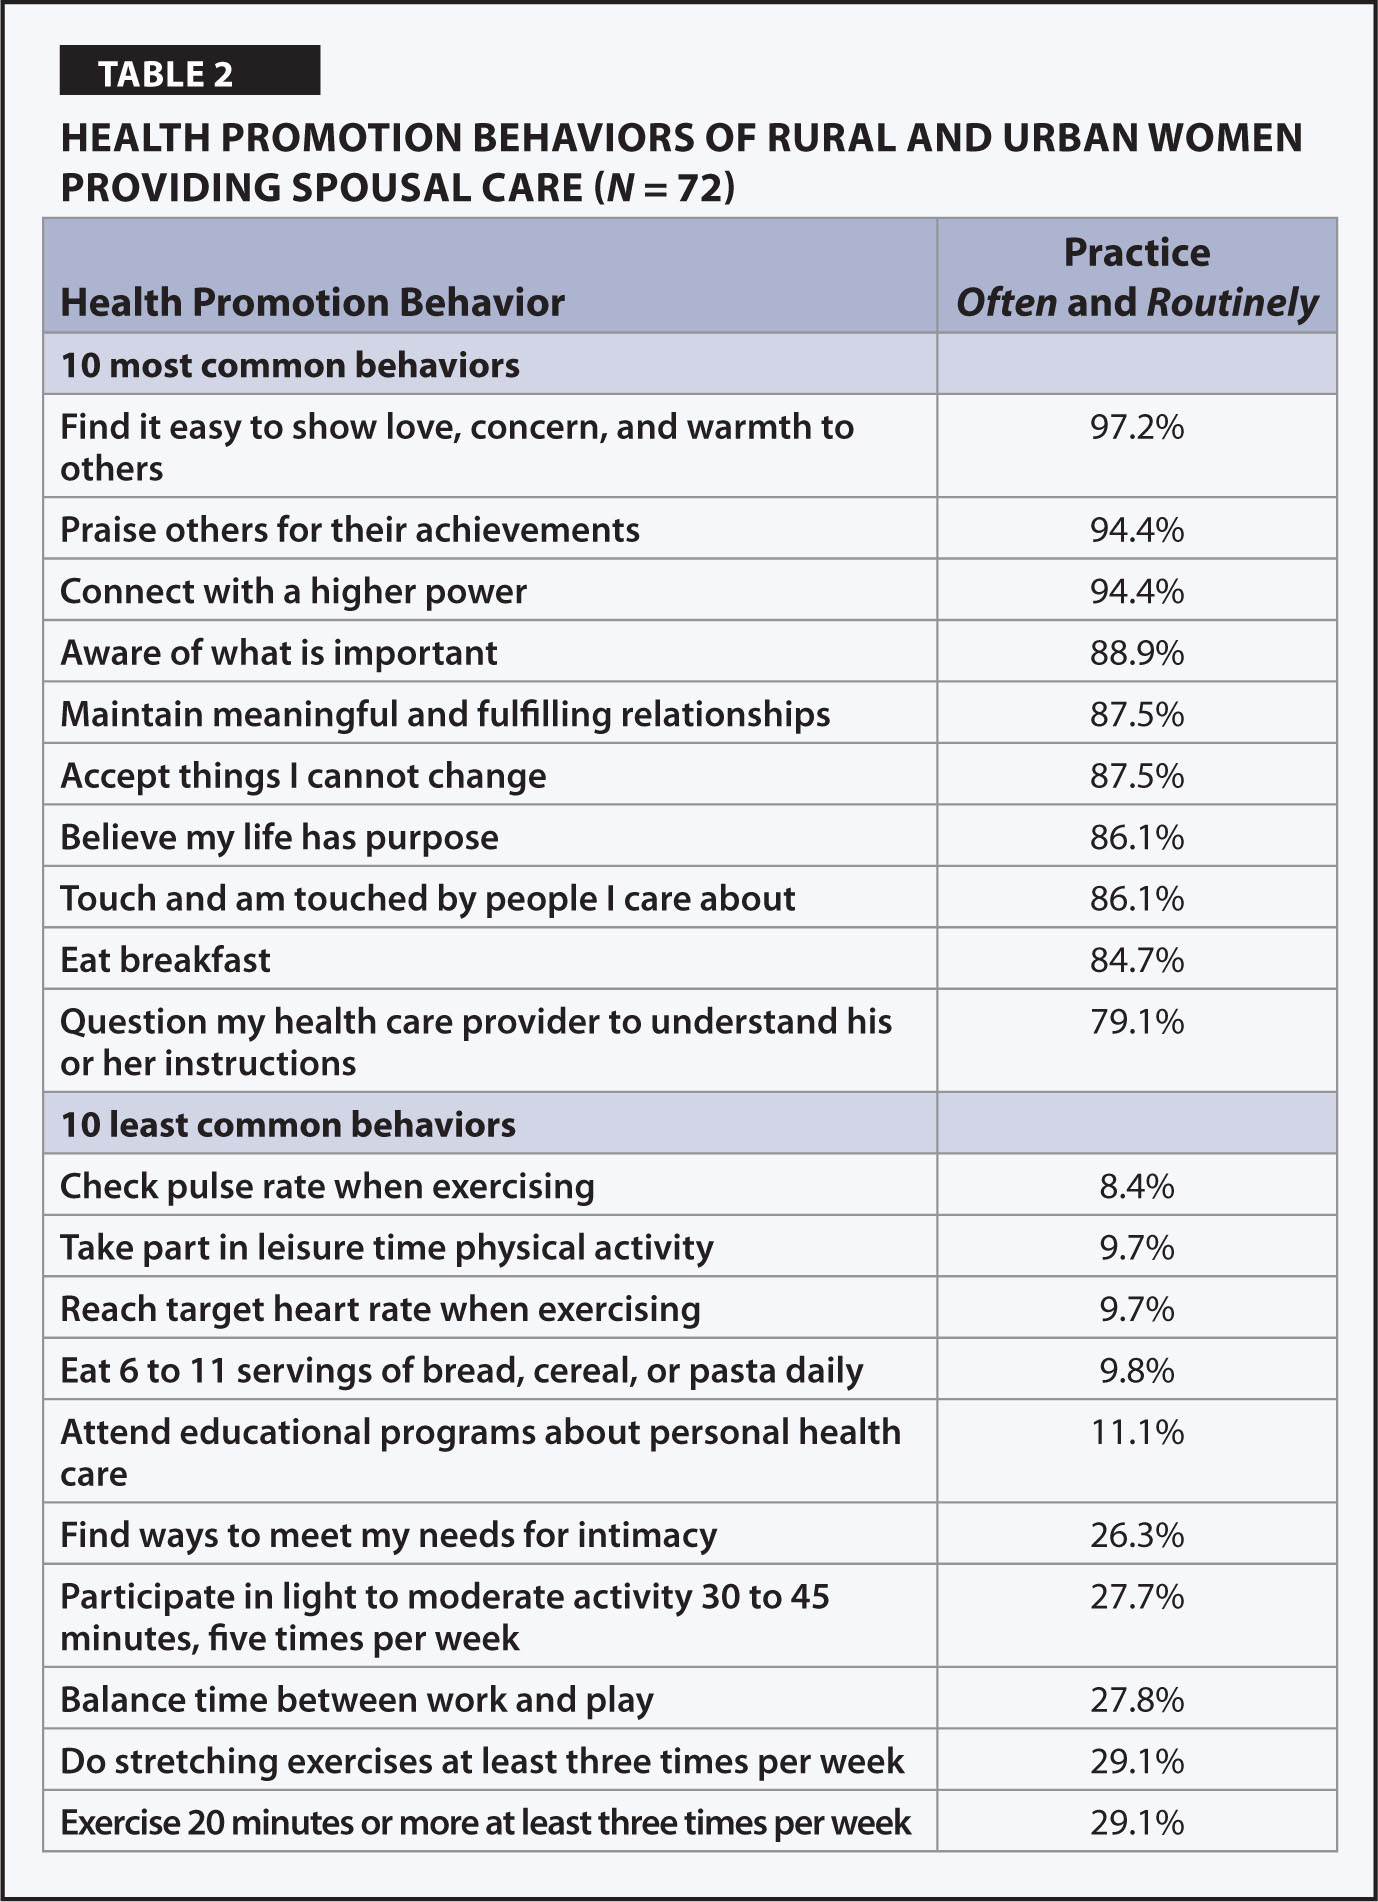 Health Promotion Behaviors of Rural and Urban Women Providing Spousal Care (N = 72)